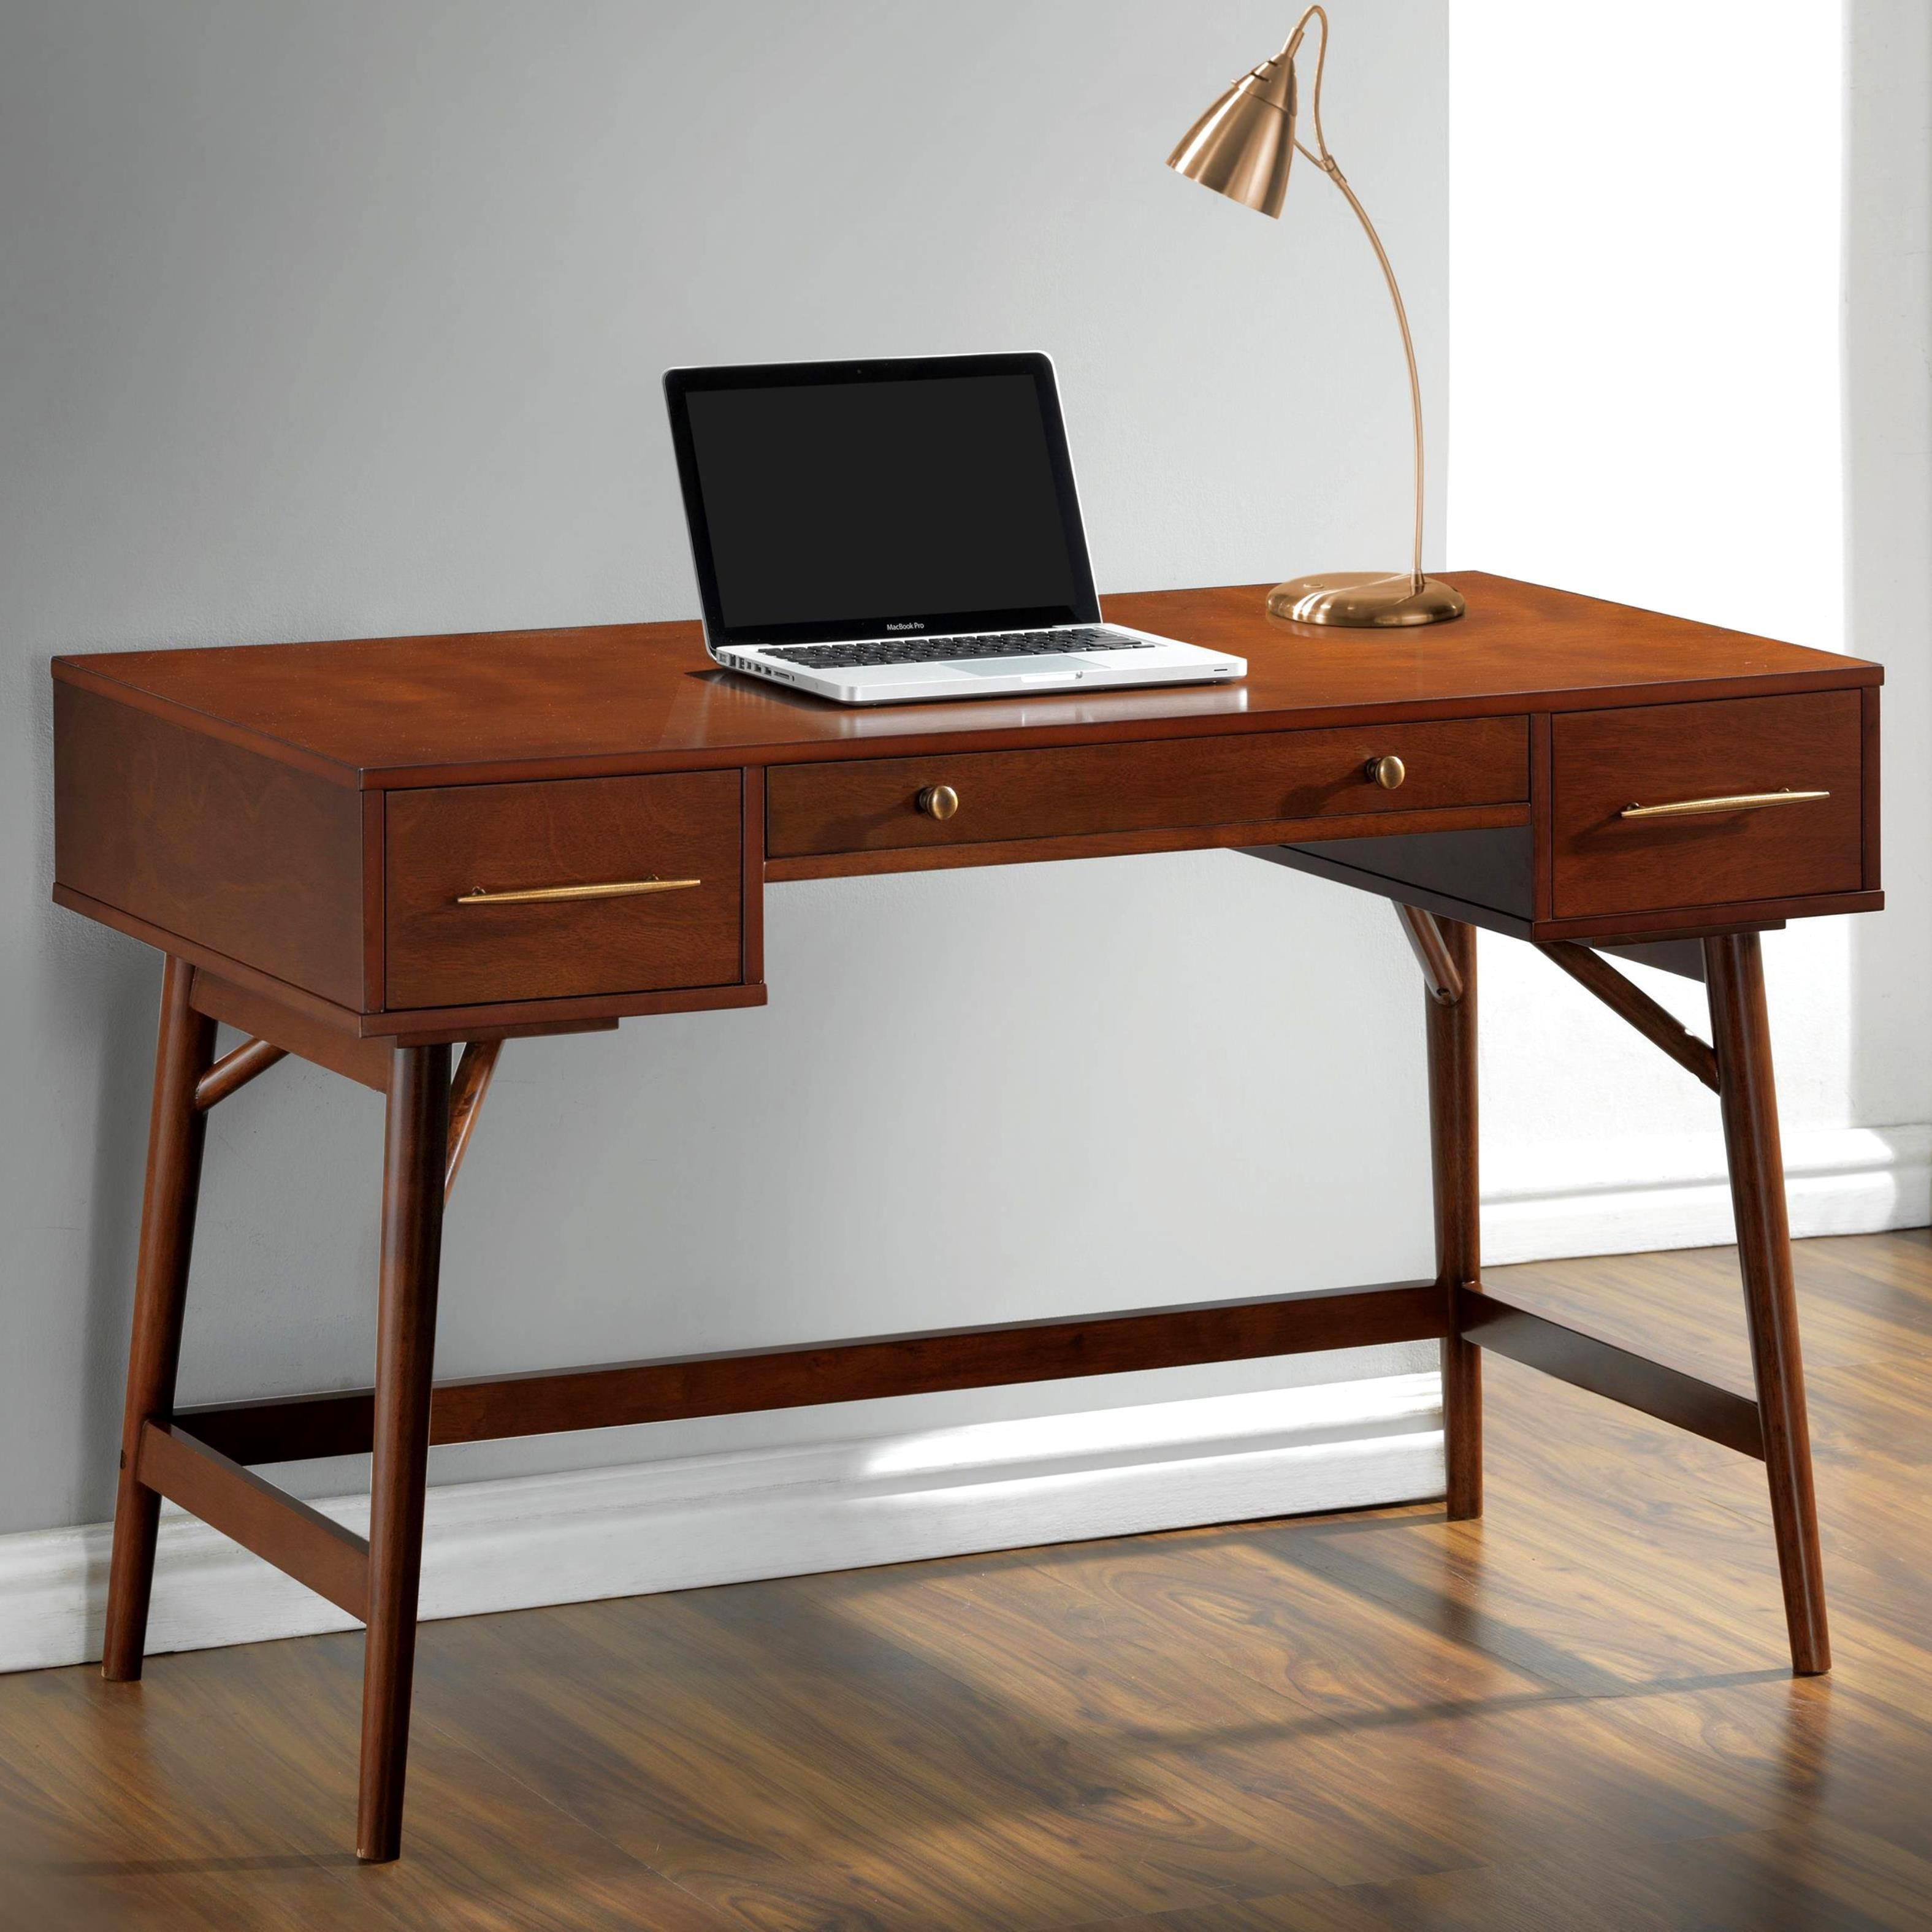 Mid Century Modern Design Home Office Writing Computer Desk With Drawers Writing Desk Home Office Furniture Coaster Furniture